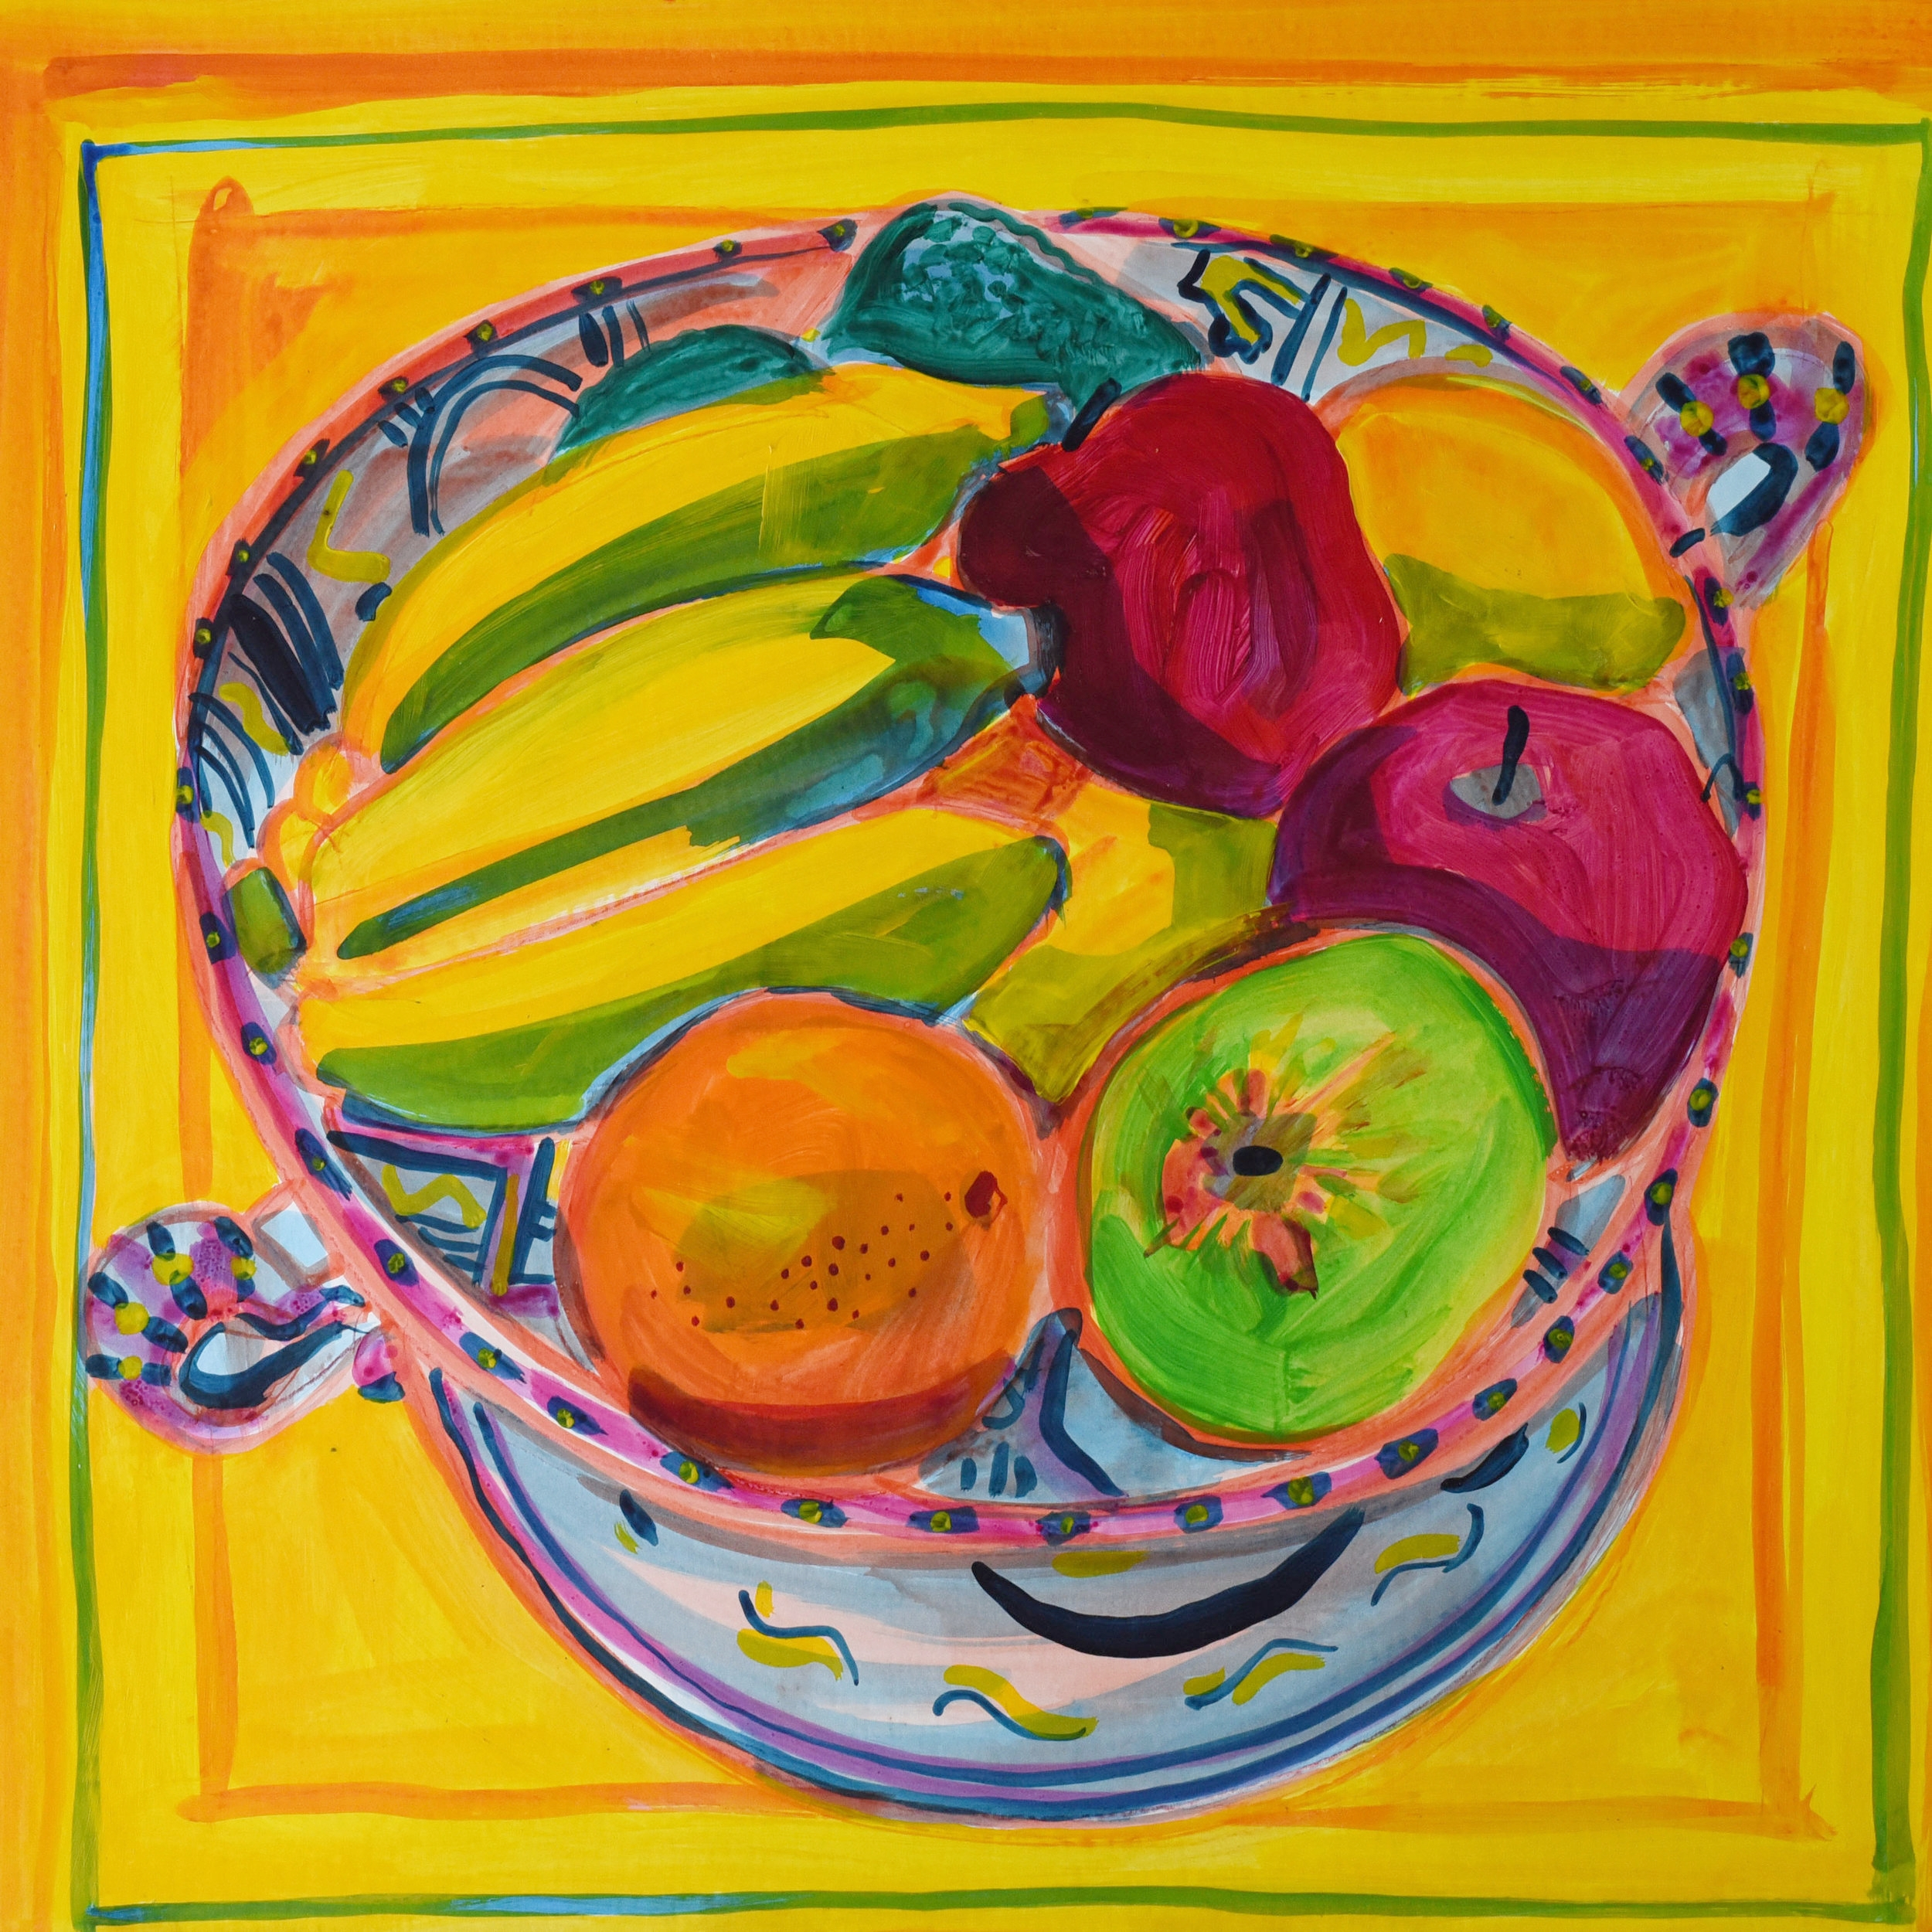 Still life of fruit bowl with a yellow background using acrylic paint